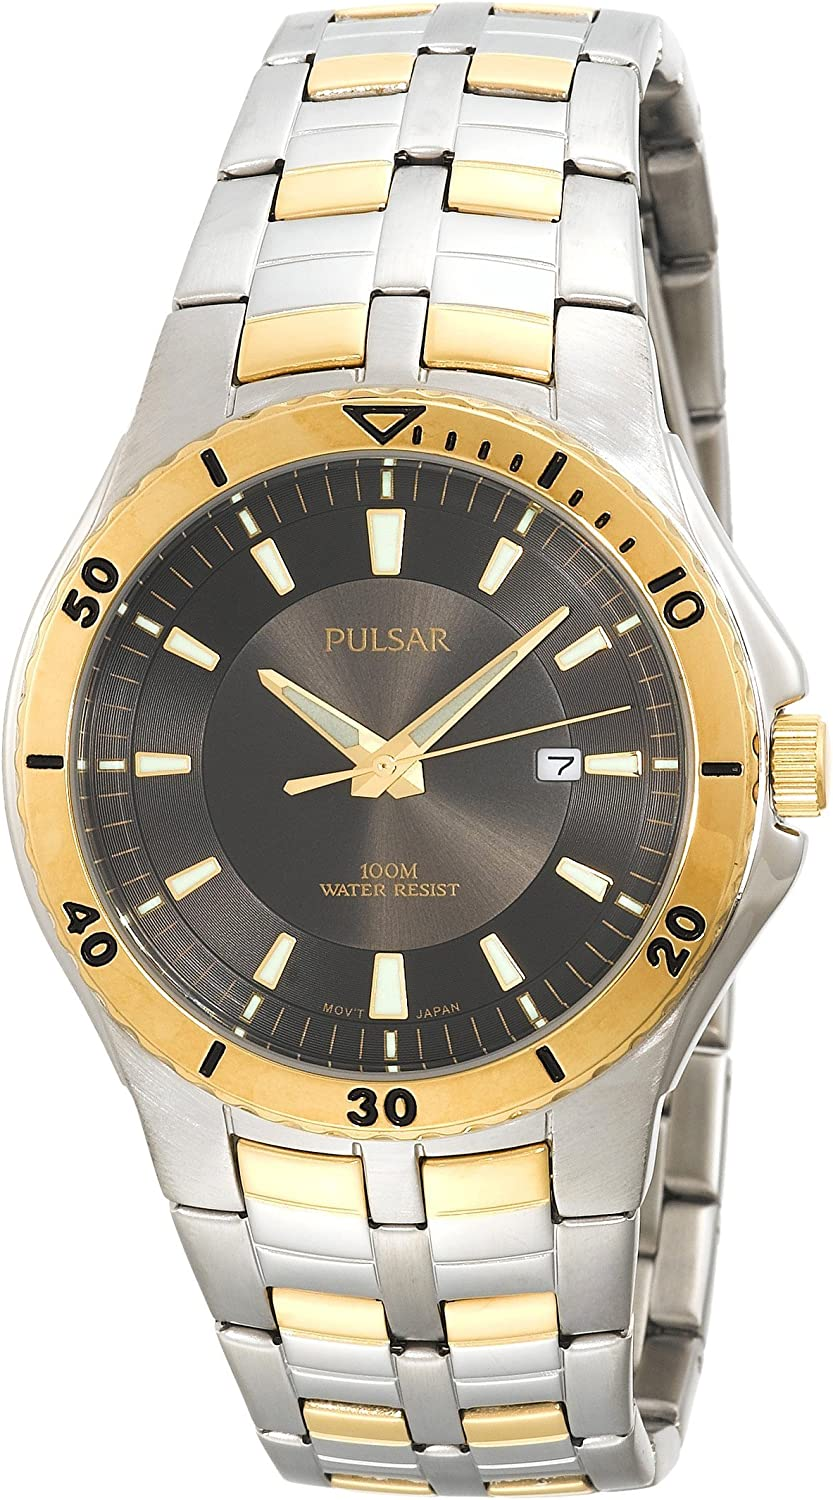 Pulsar Men's PXDB24 Sport Two-Tone Stainless Steel Watch